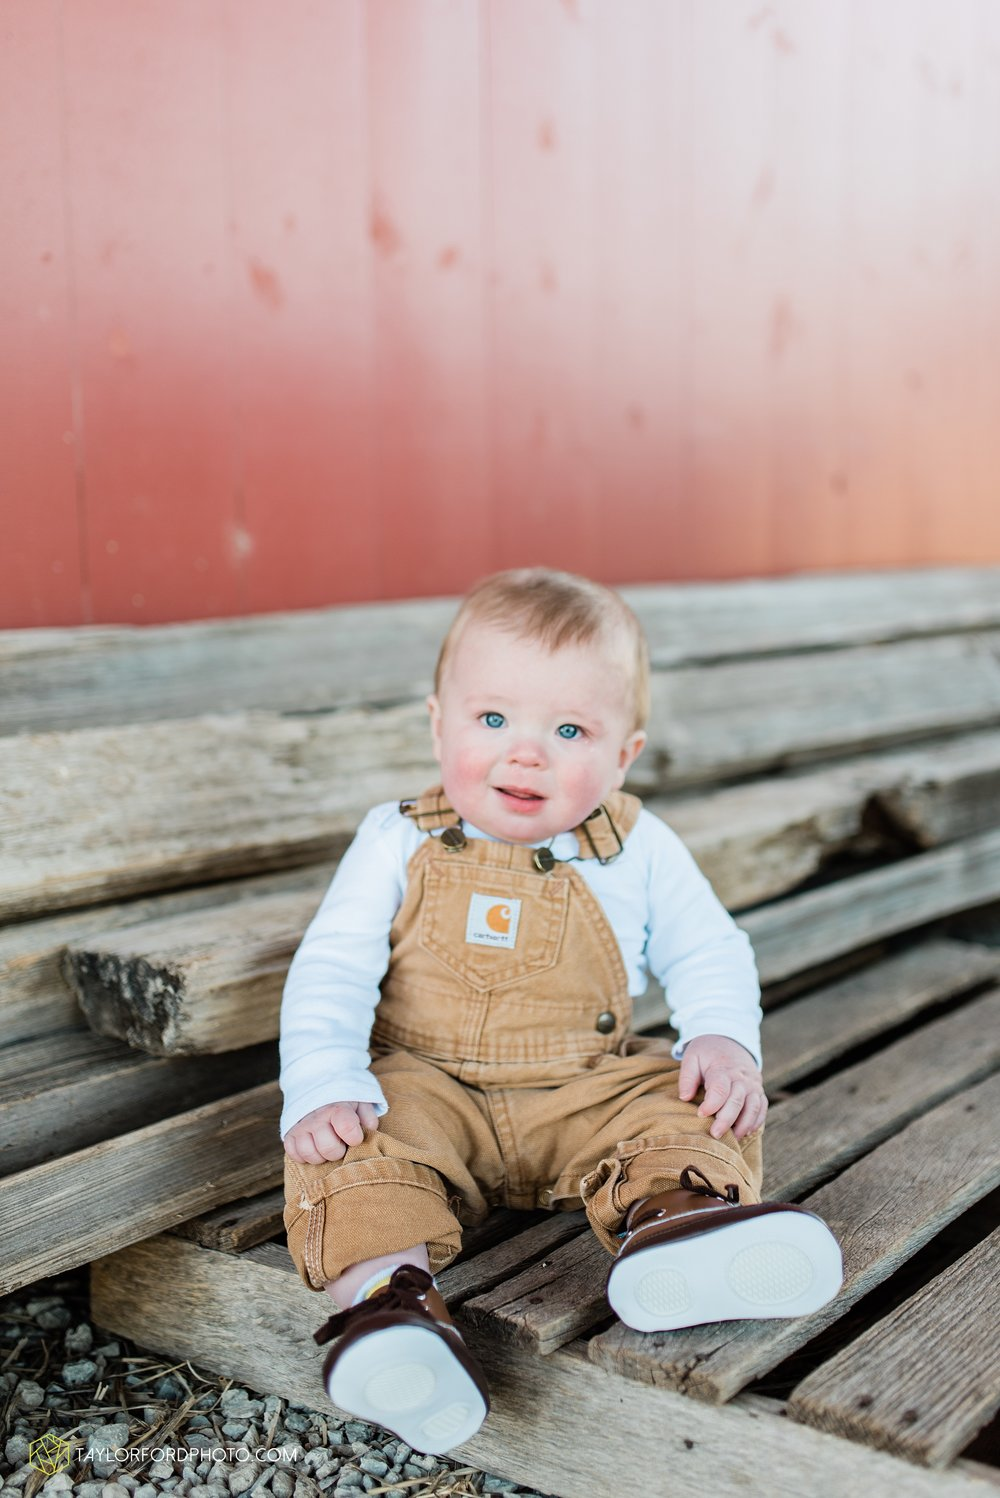 fort-wayne-indiana-child-photographer-6-months-solomon-farm-park-Taylor-Ford-Photography_6497.jpg